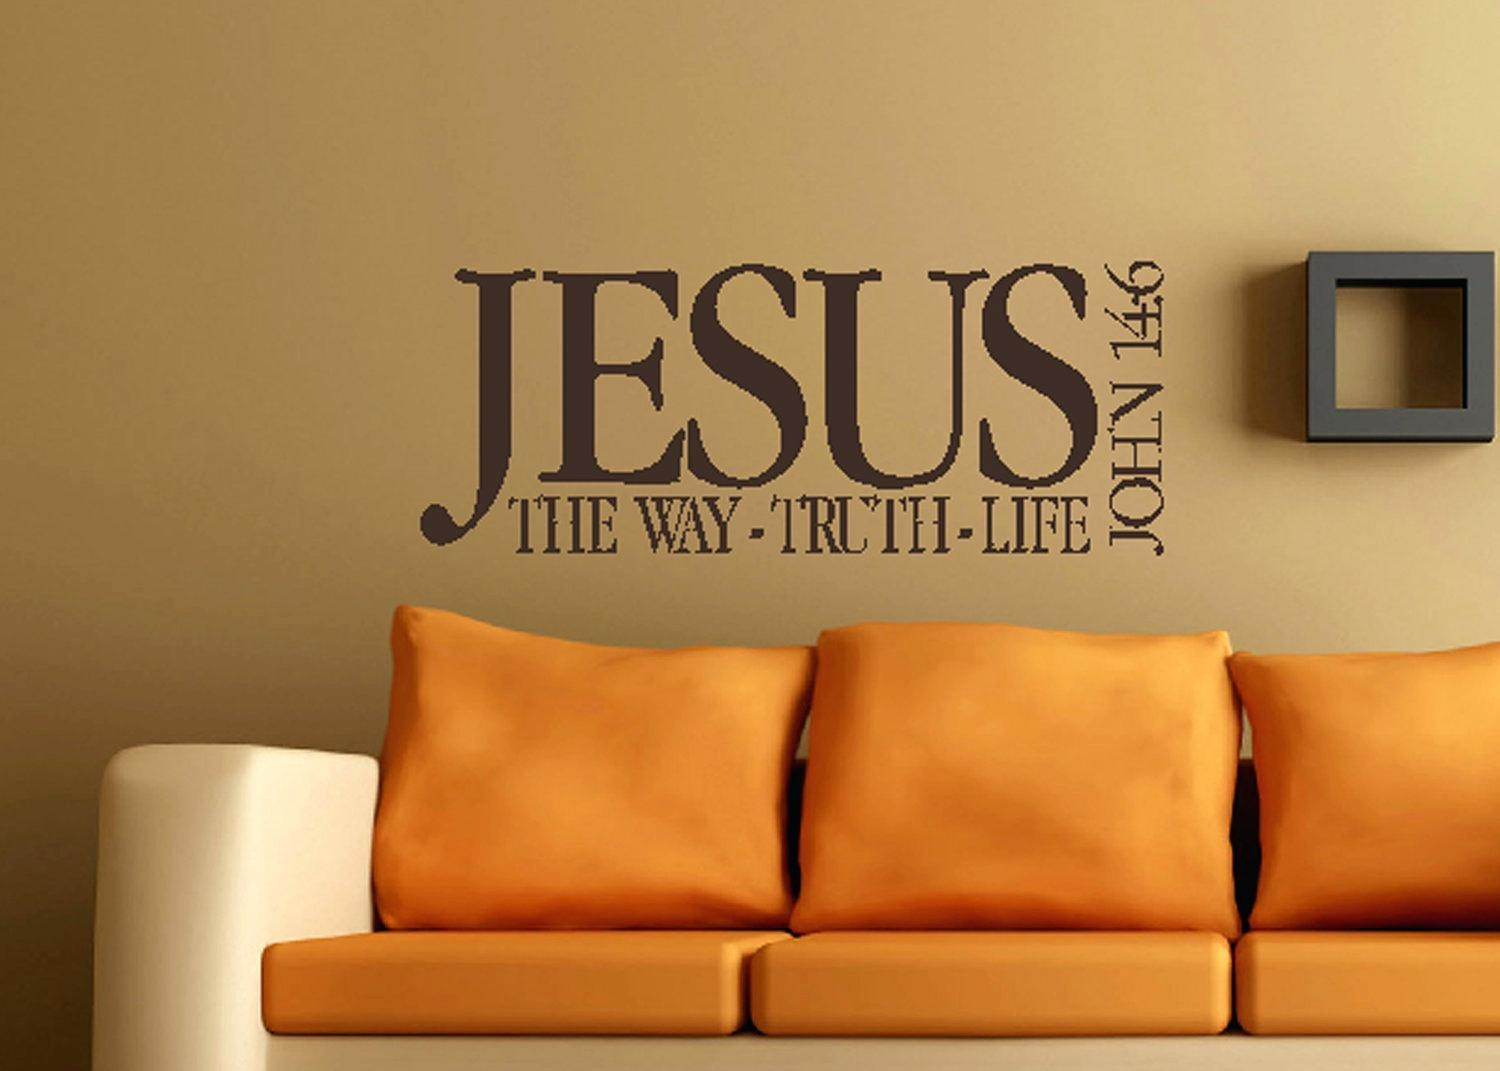 Wall Ideas : Bible Verse Vinyl Wall Decals Bible Verse Wall Decor With Regard To Scripture Vinyl Wall Art (View 18 of 20)